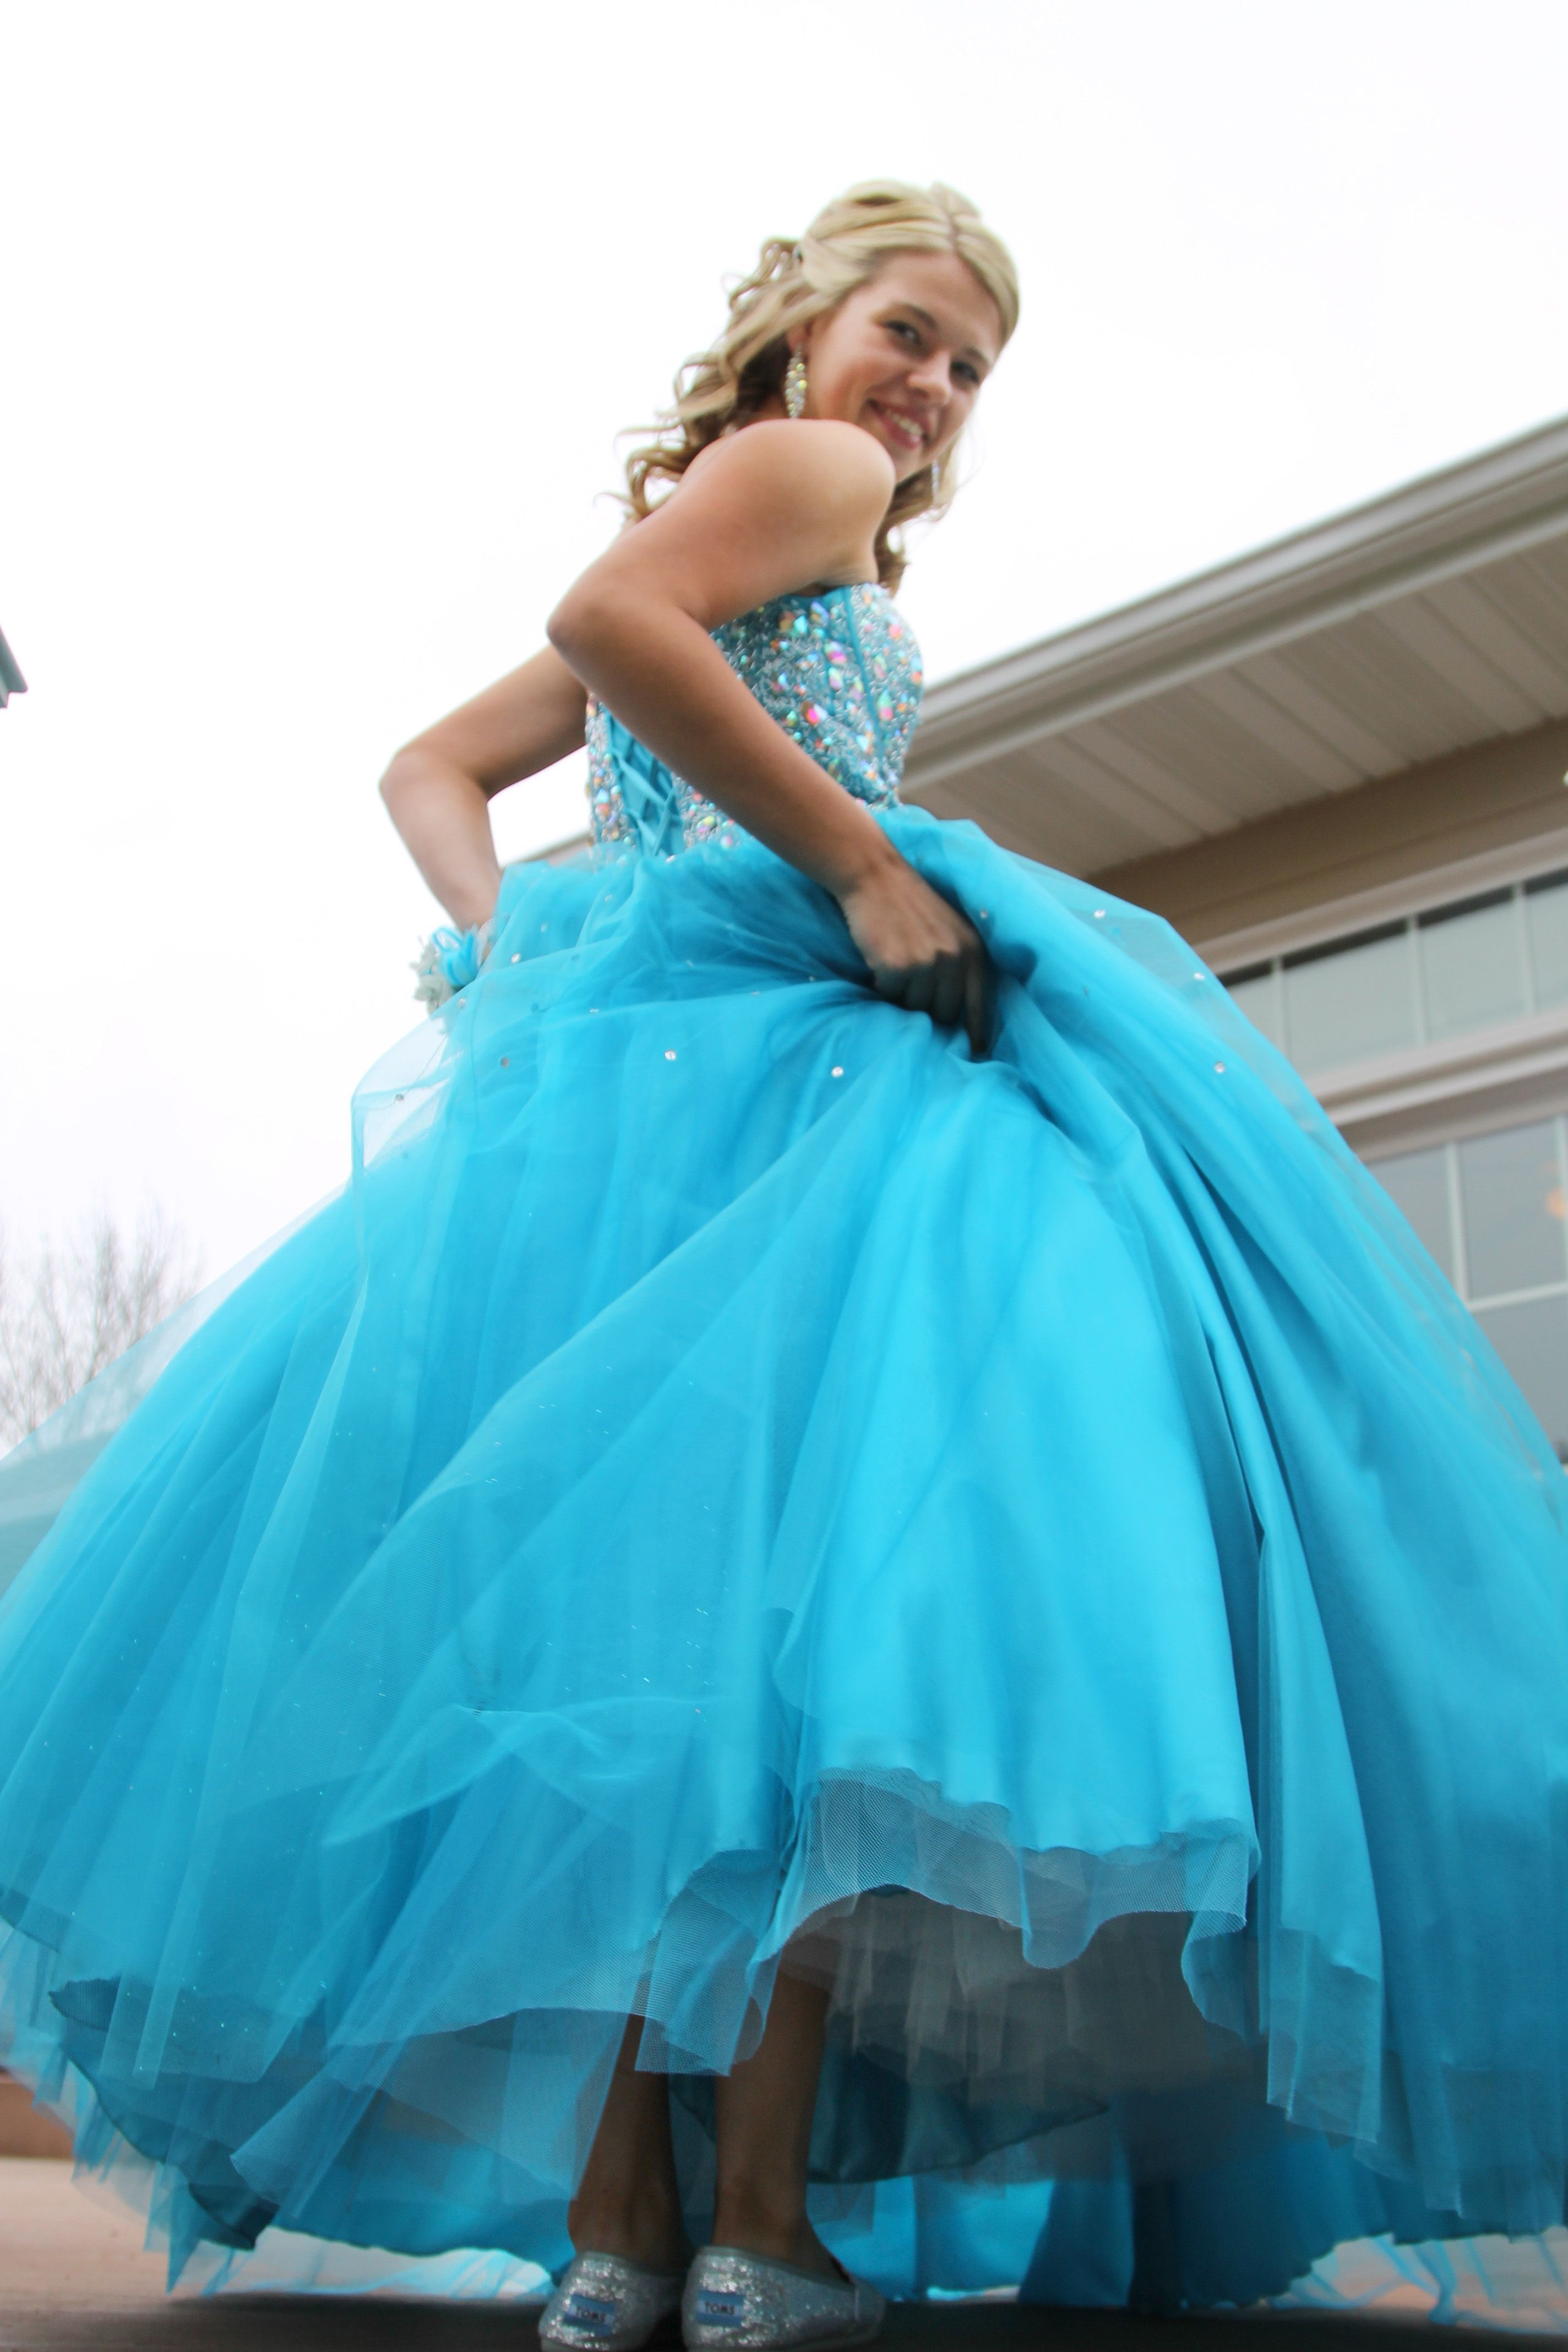 Gorgeous prom dress and glitter toms tomsforprom sissy caption